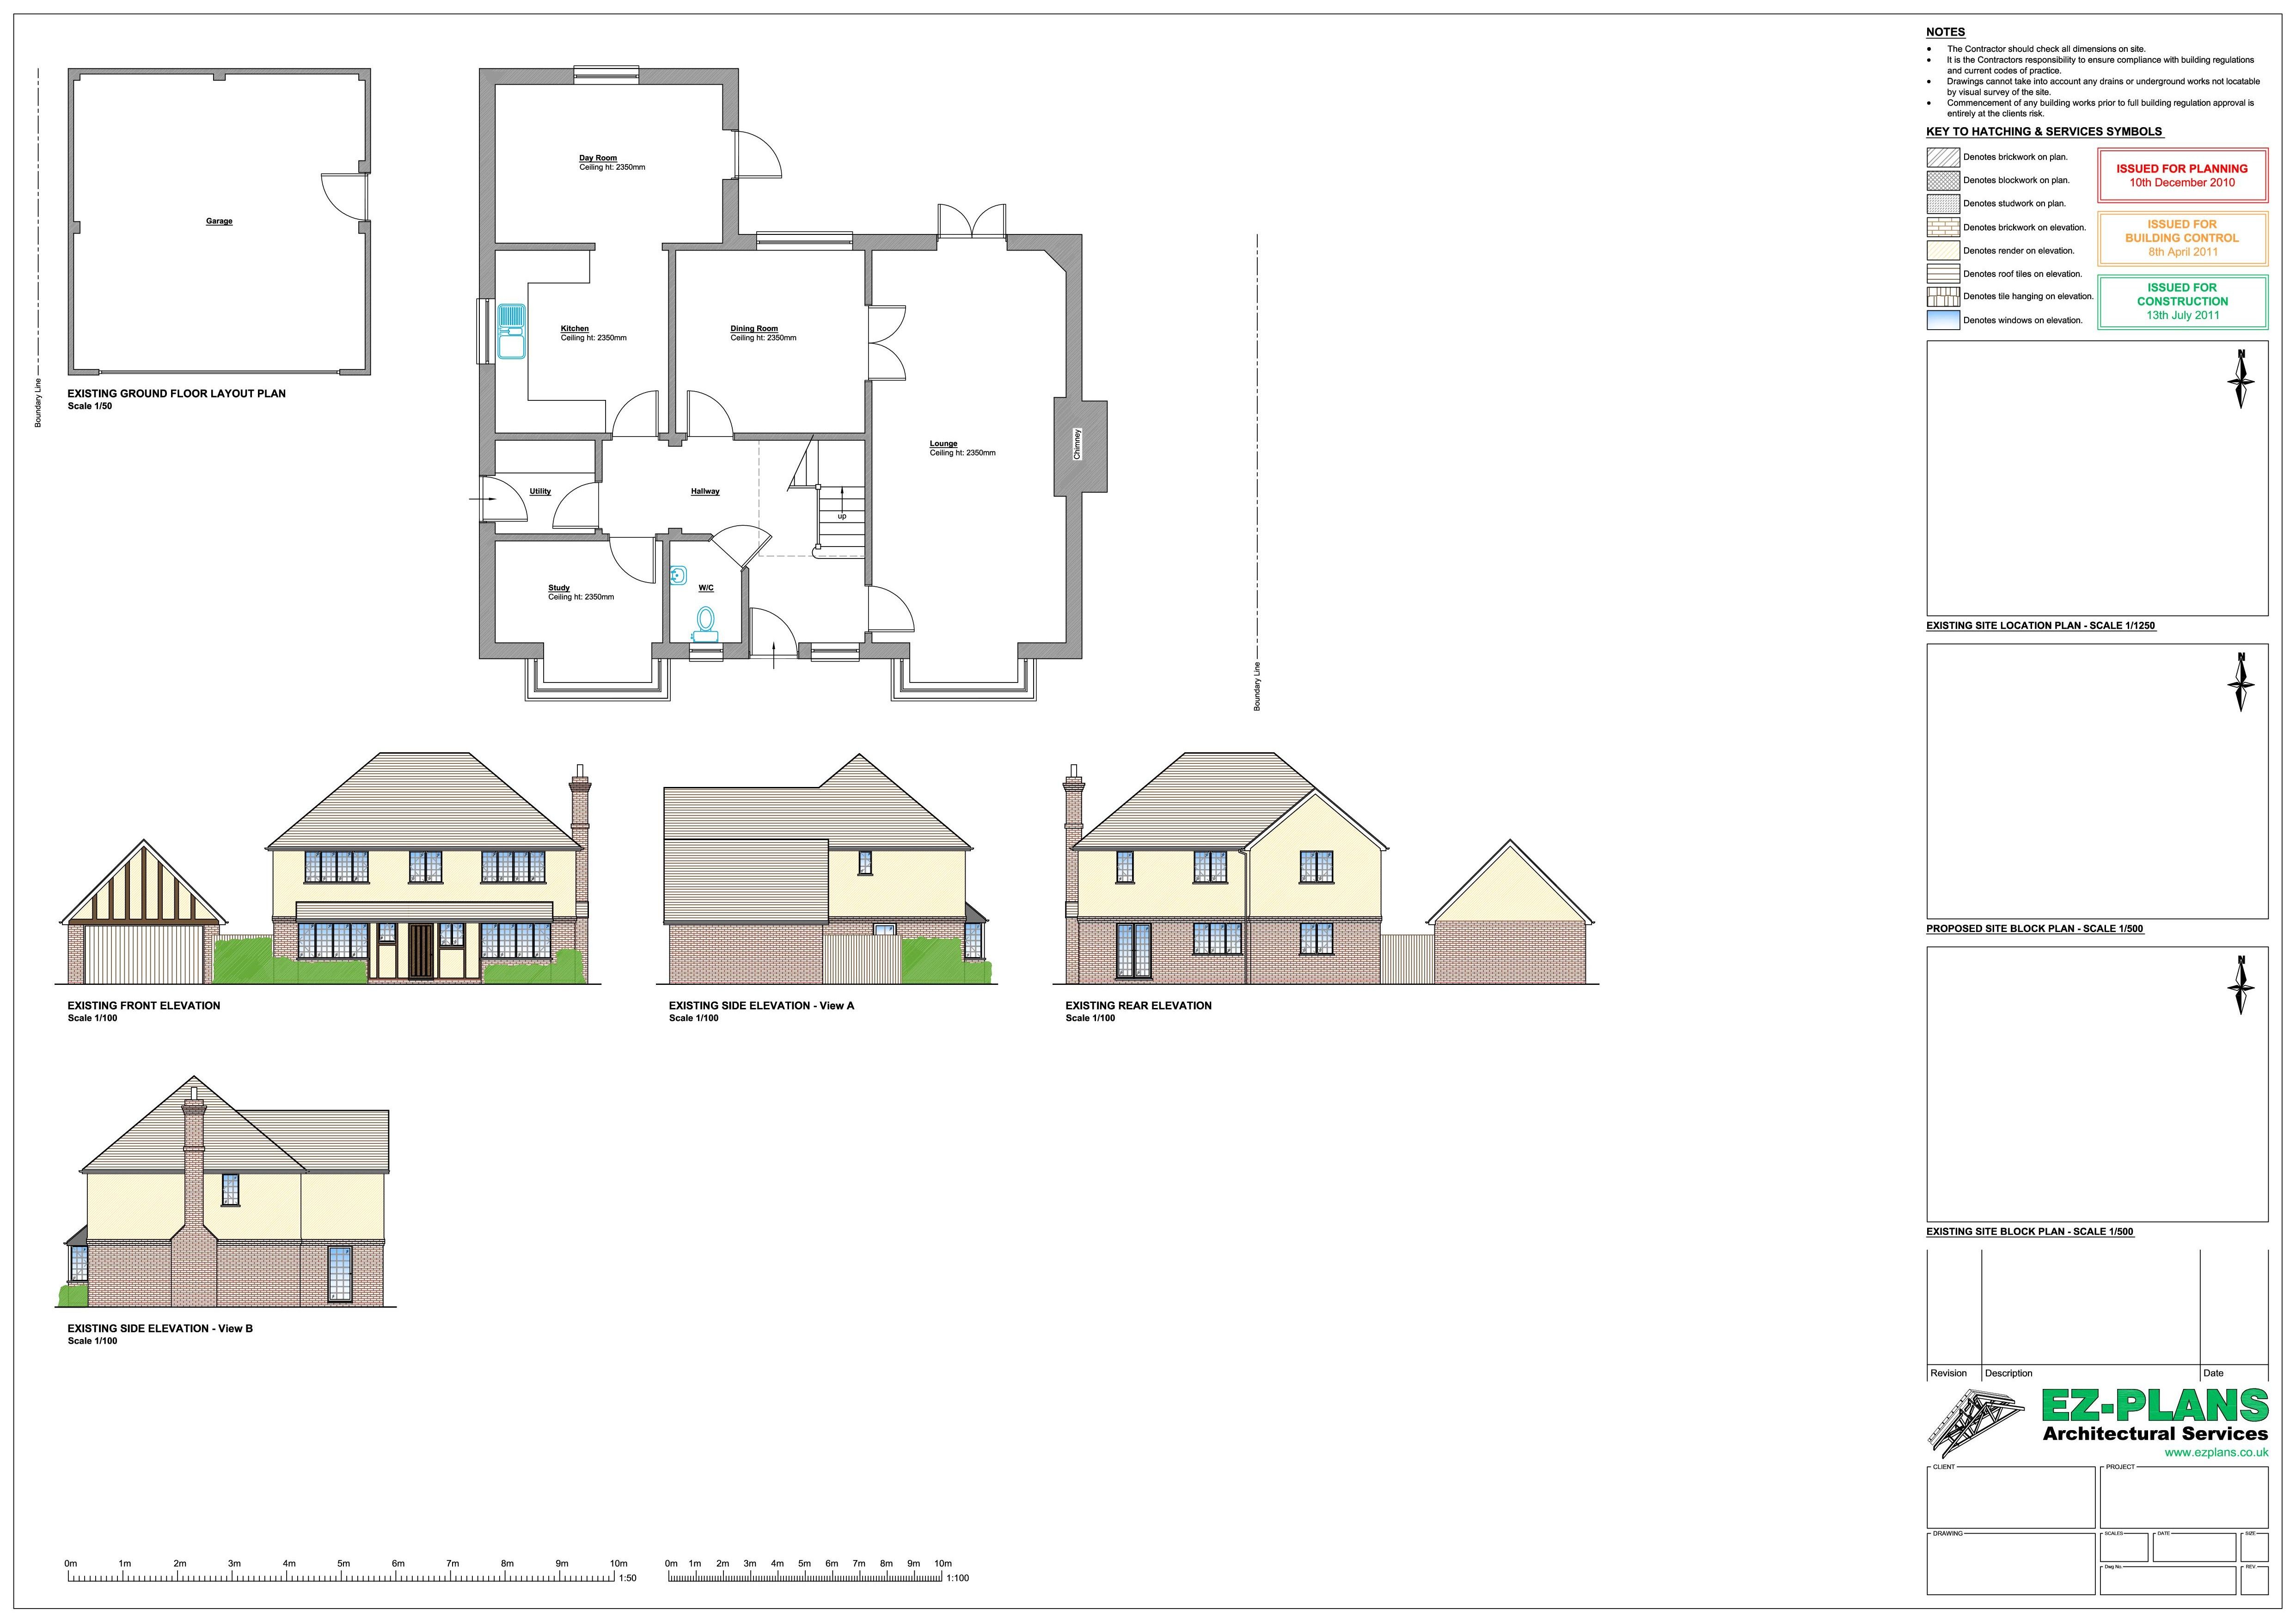 House design brief example - Site Drawings